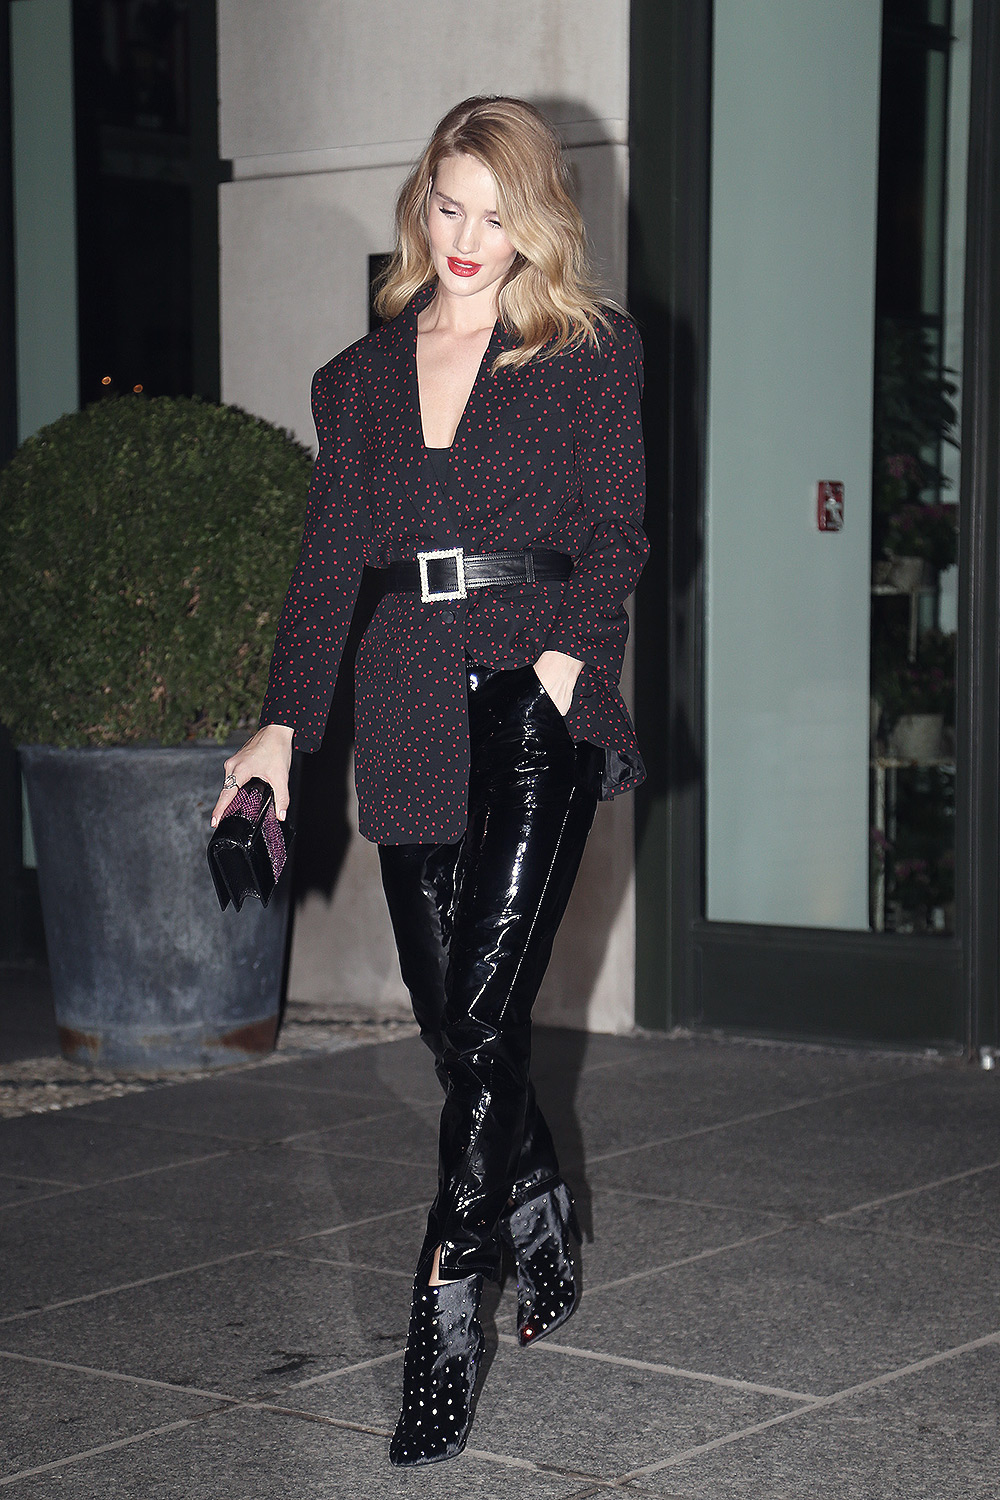 Rosie Huntington Whiteley leaving her hotel